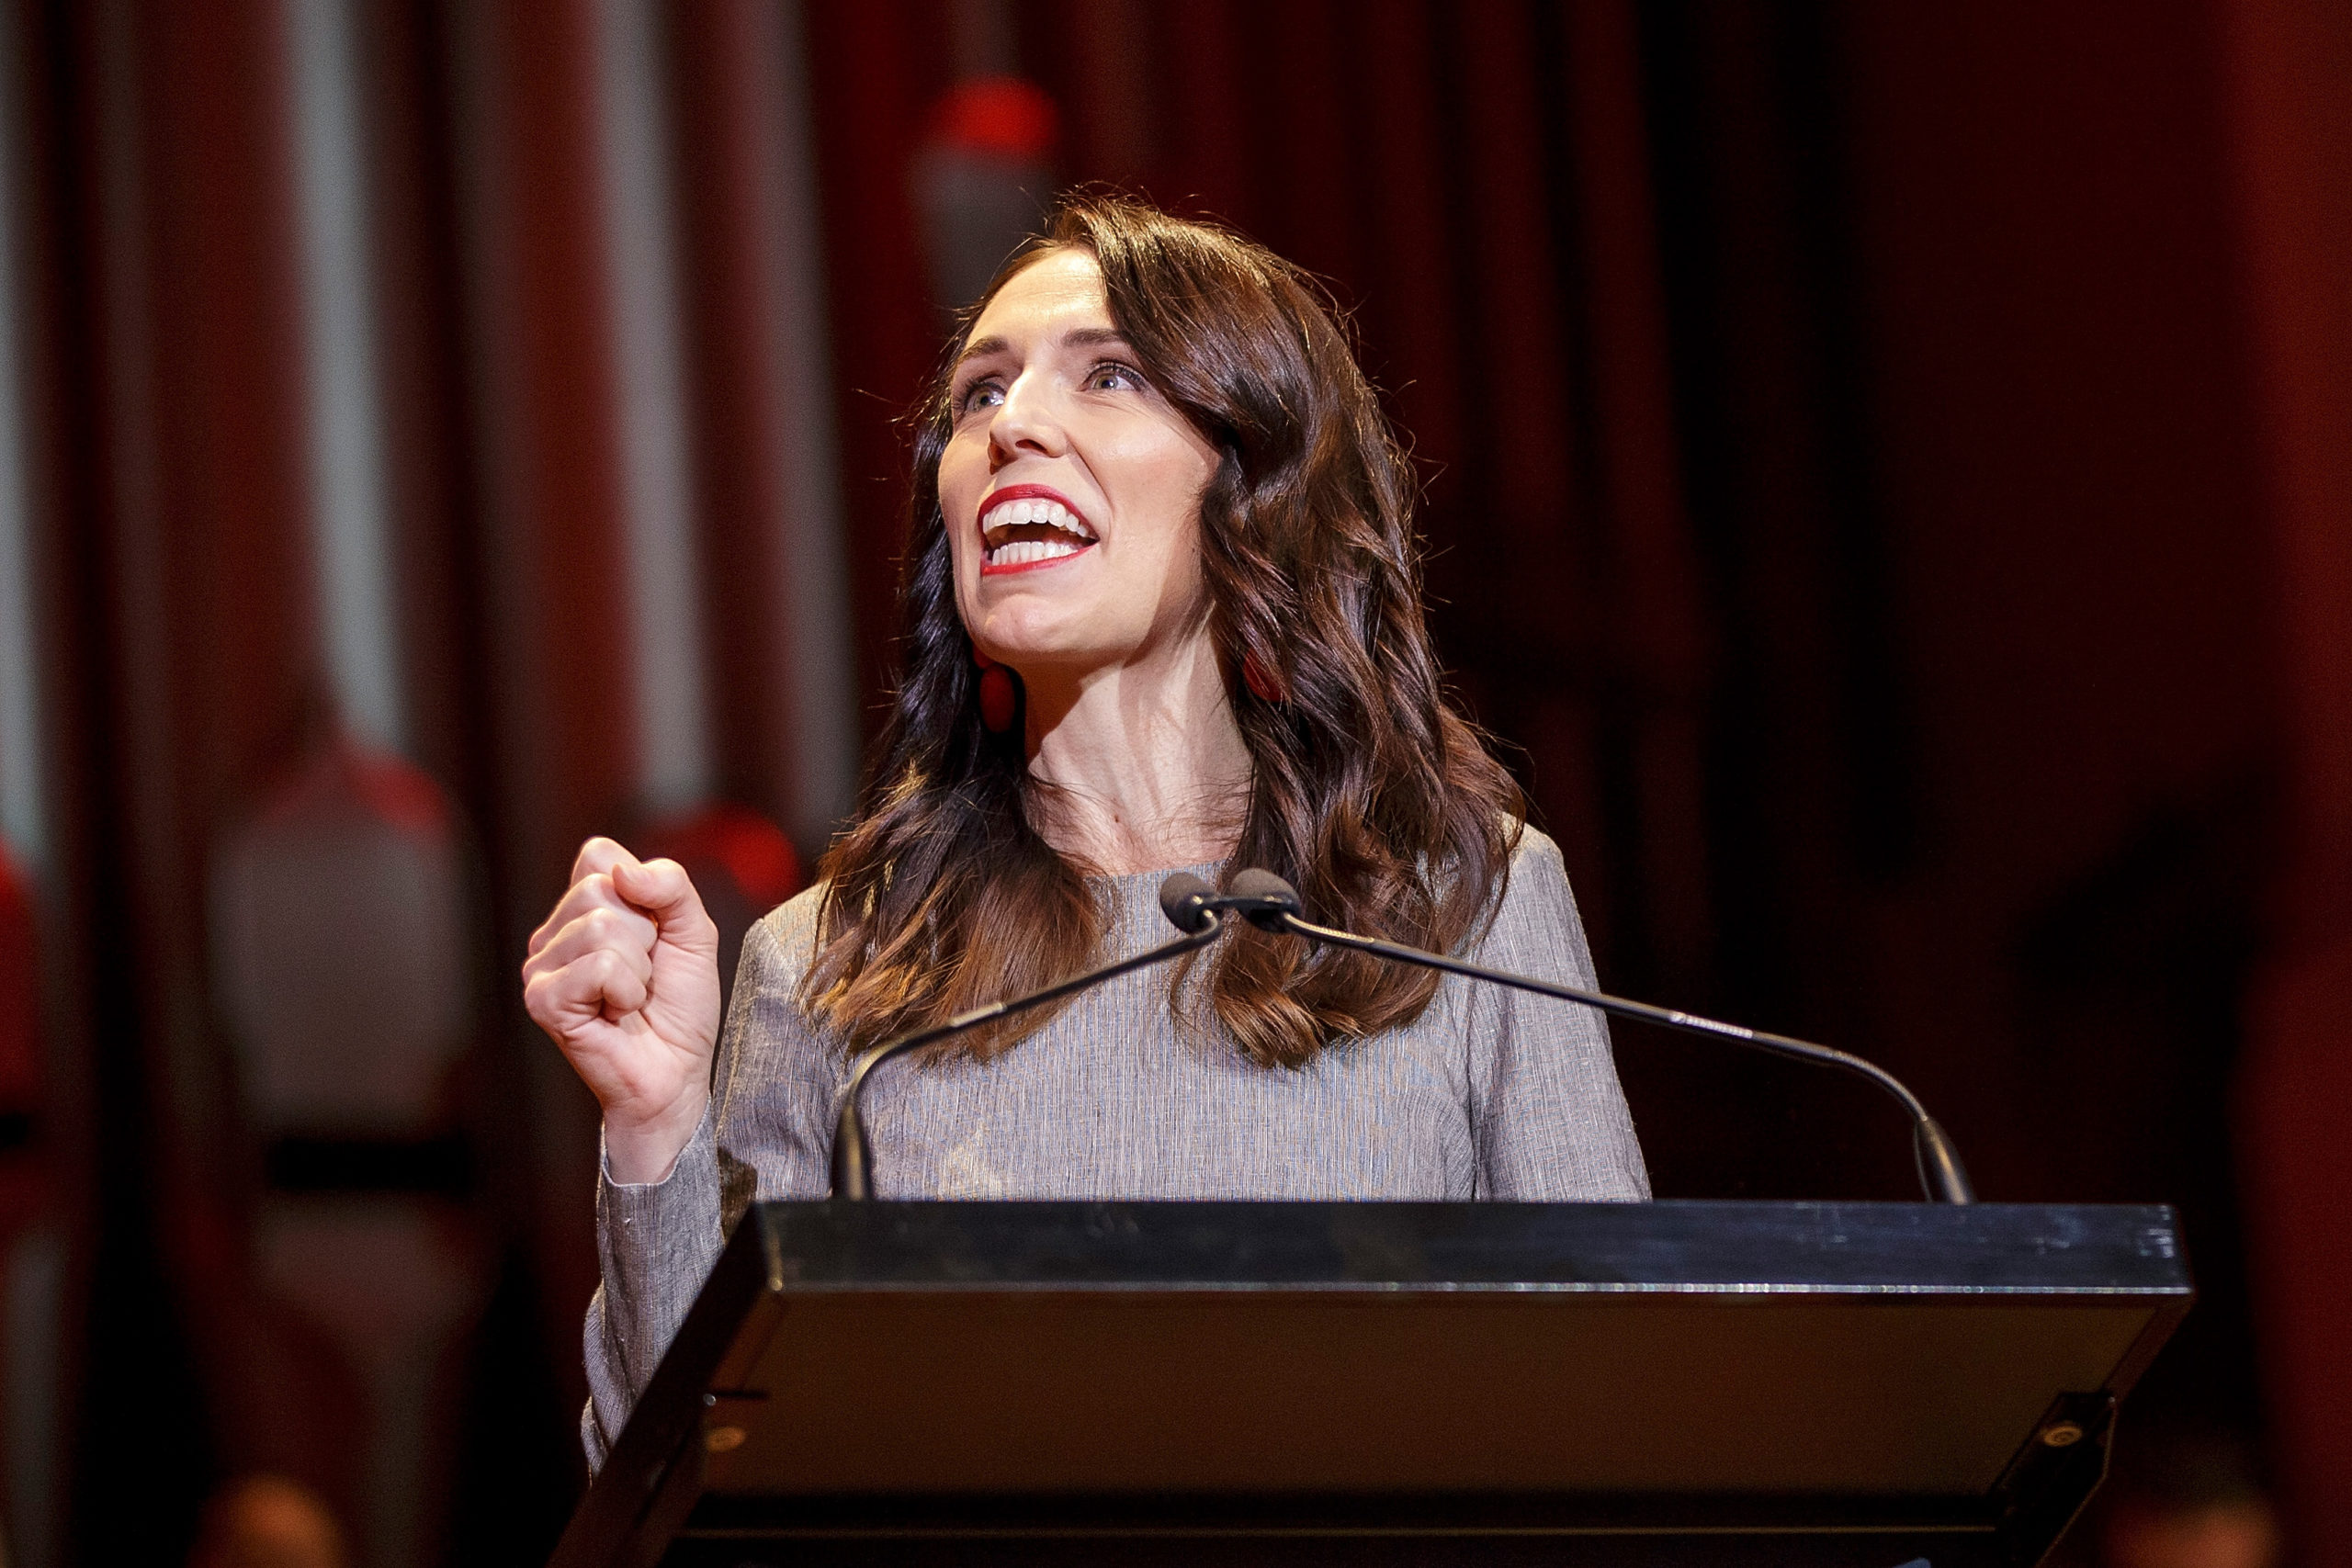 World: New Zealand introduces climate change law for financial firms in world first